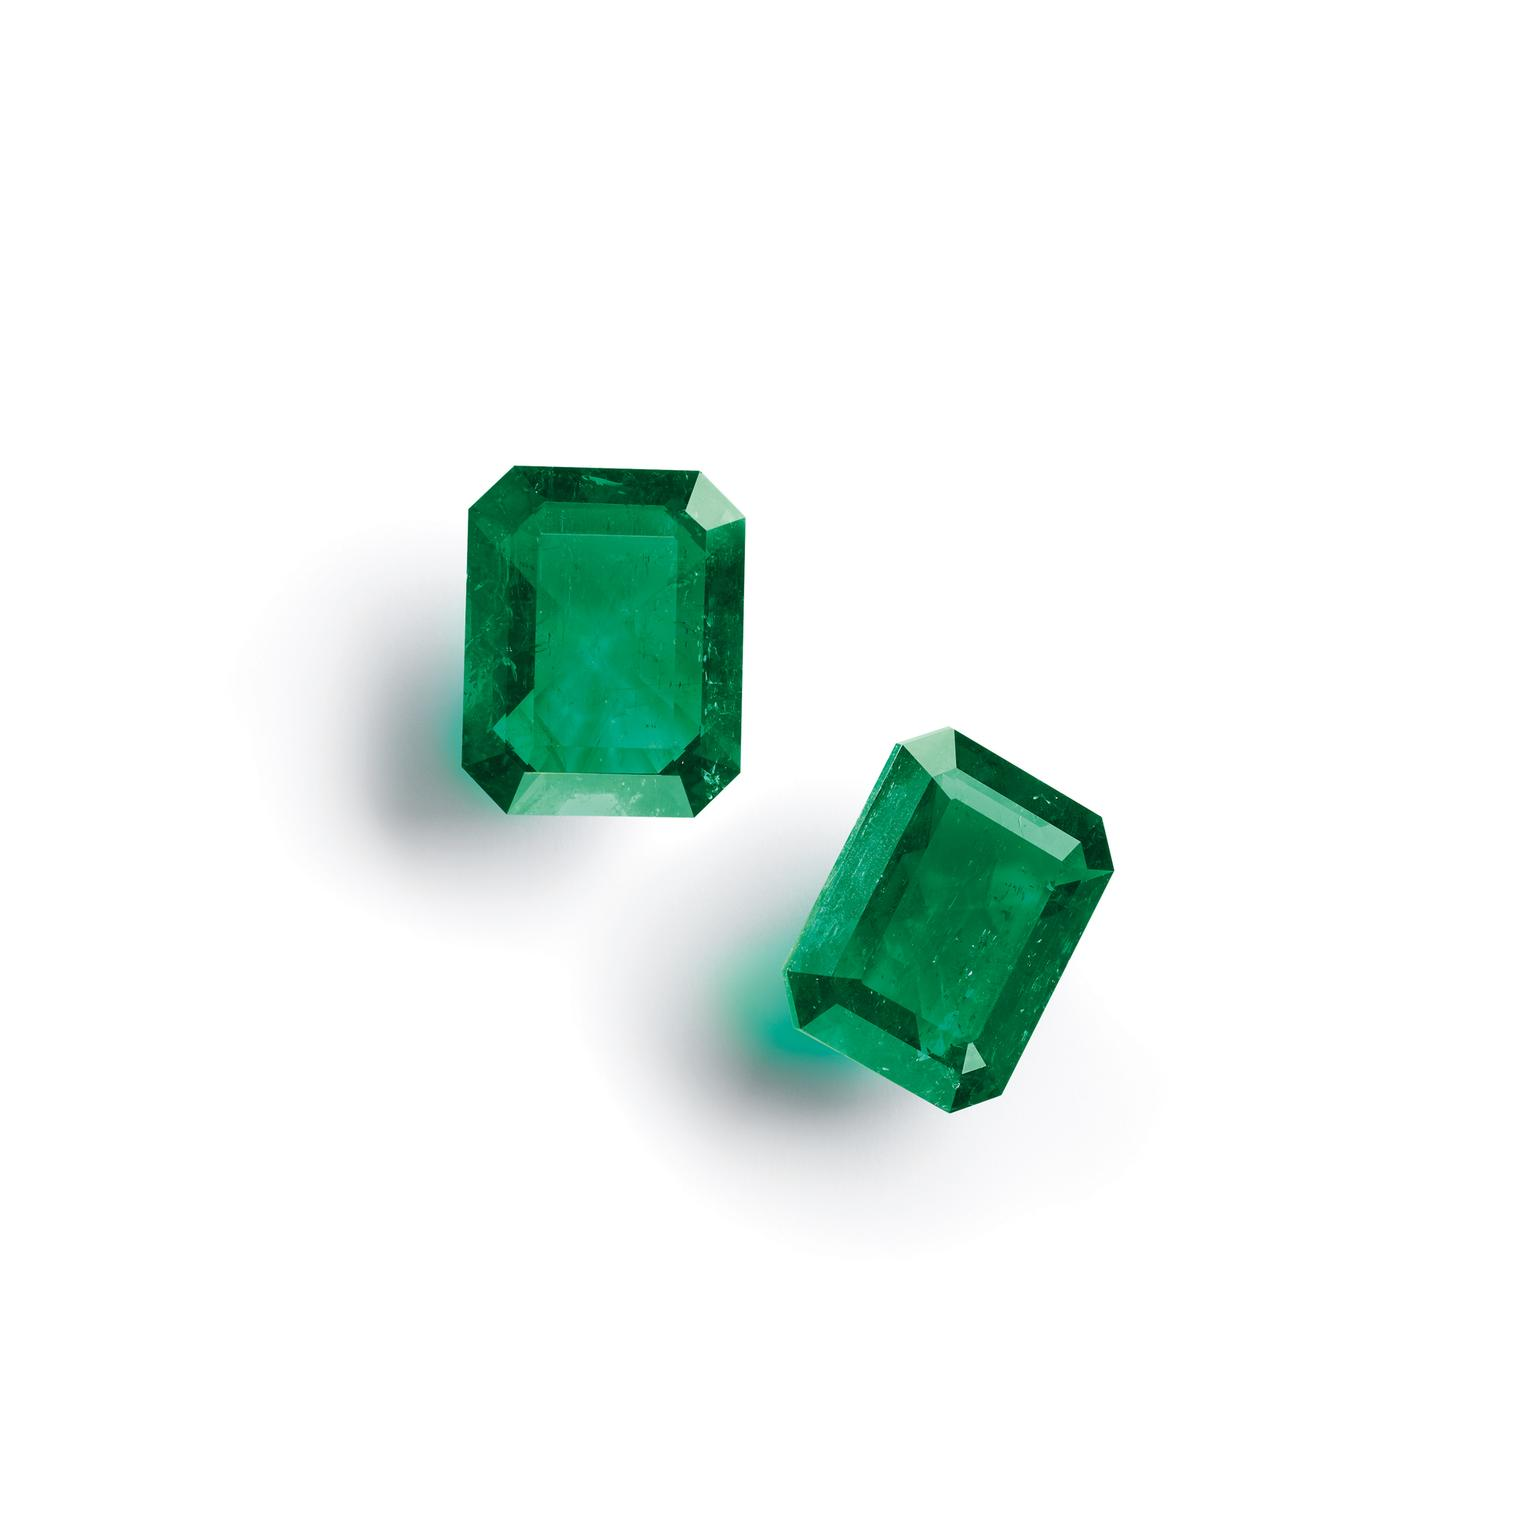 Pair of masterpieces emerald-cut Muzo emeralds